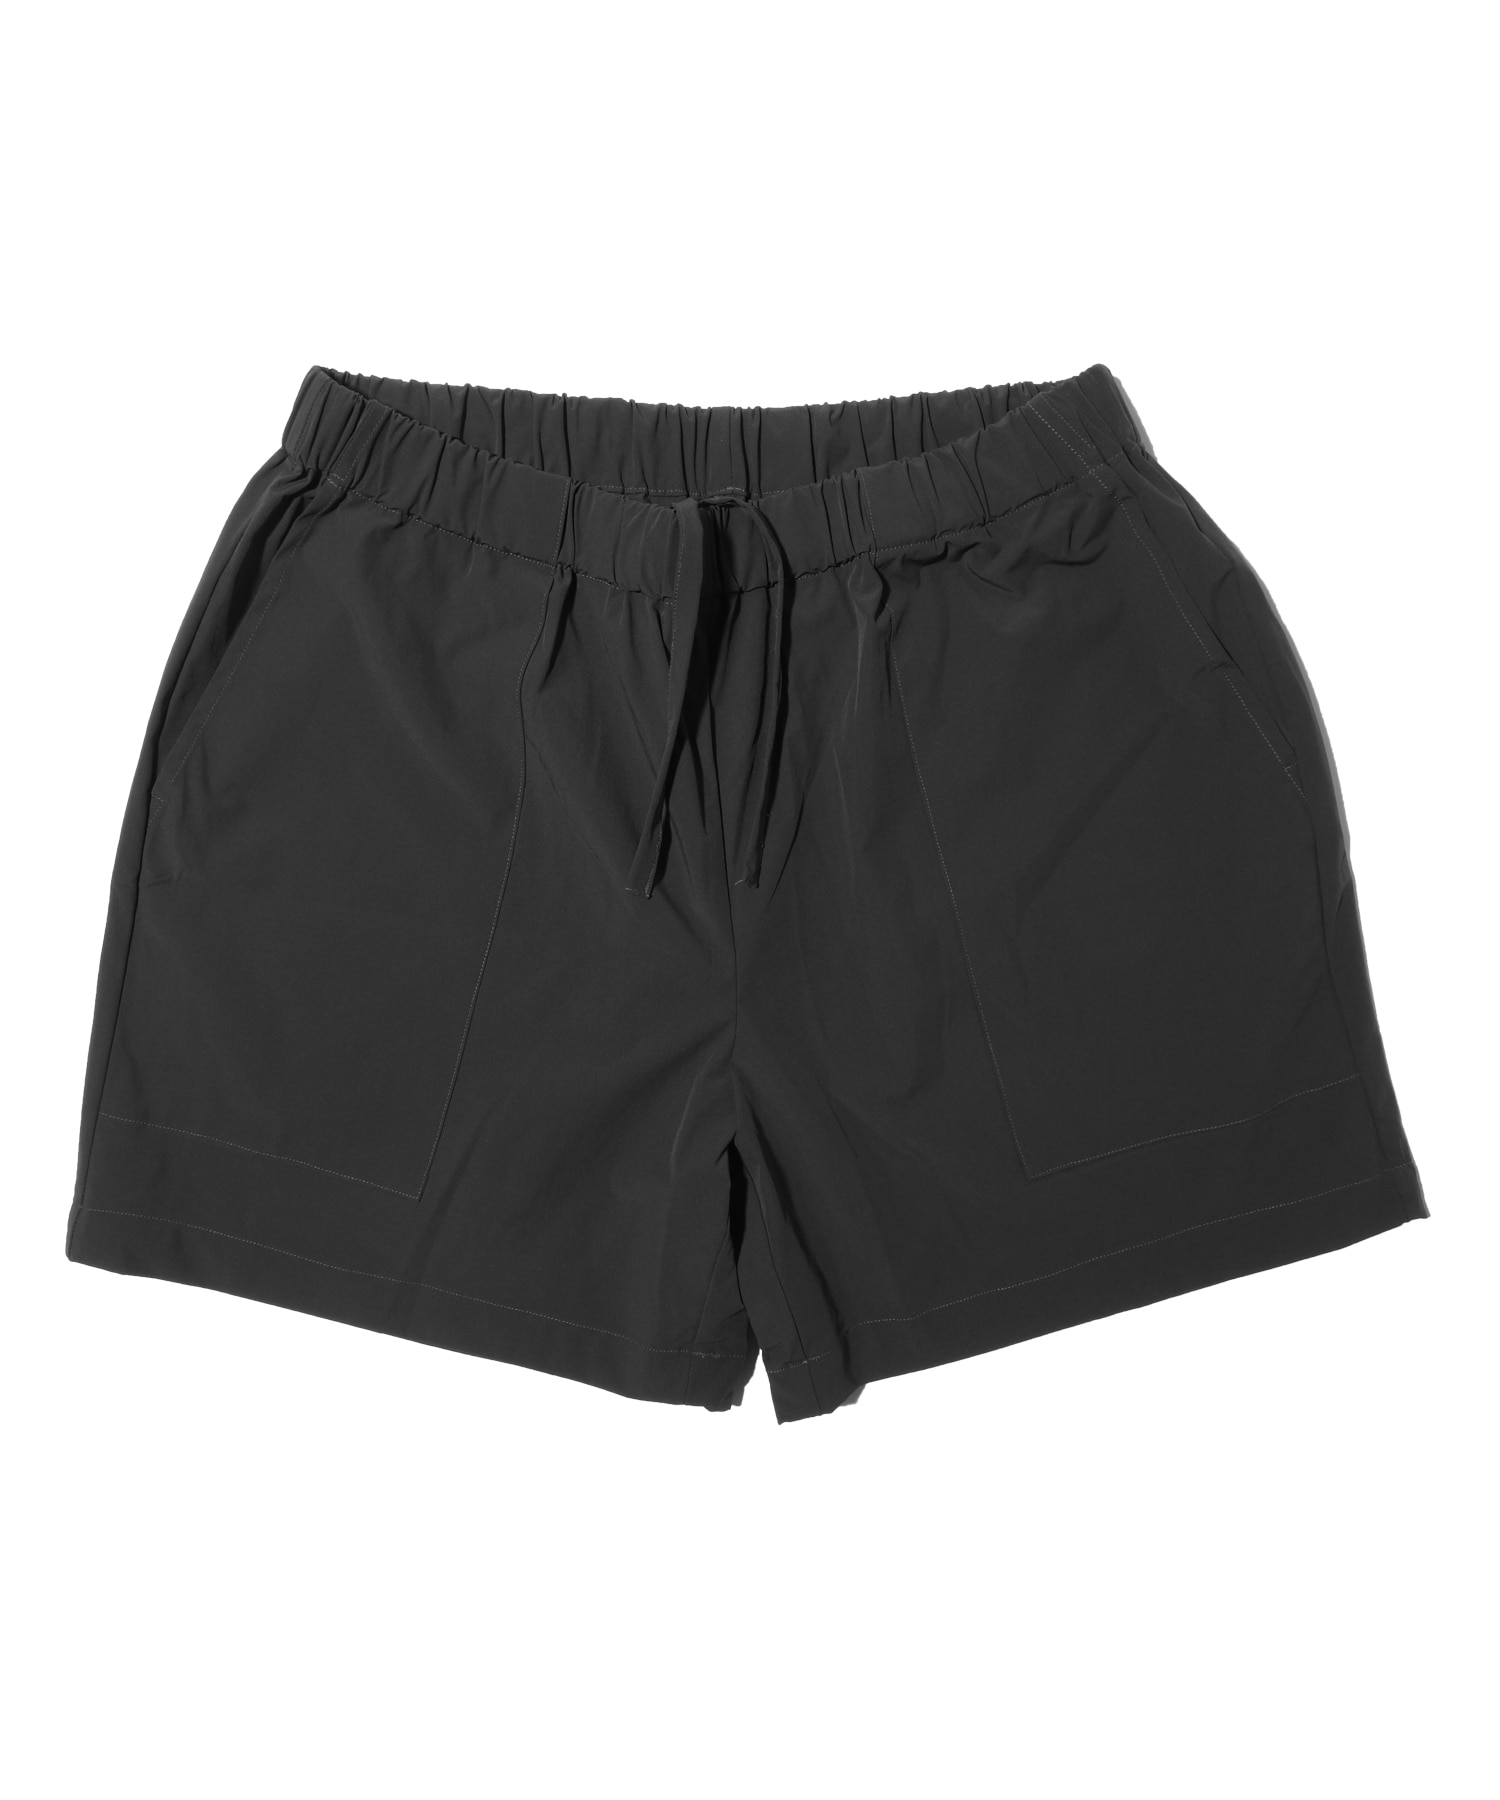 해버대셔리 WATERPROOF BEACH SHORTS_Grey